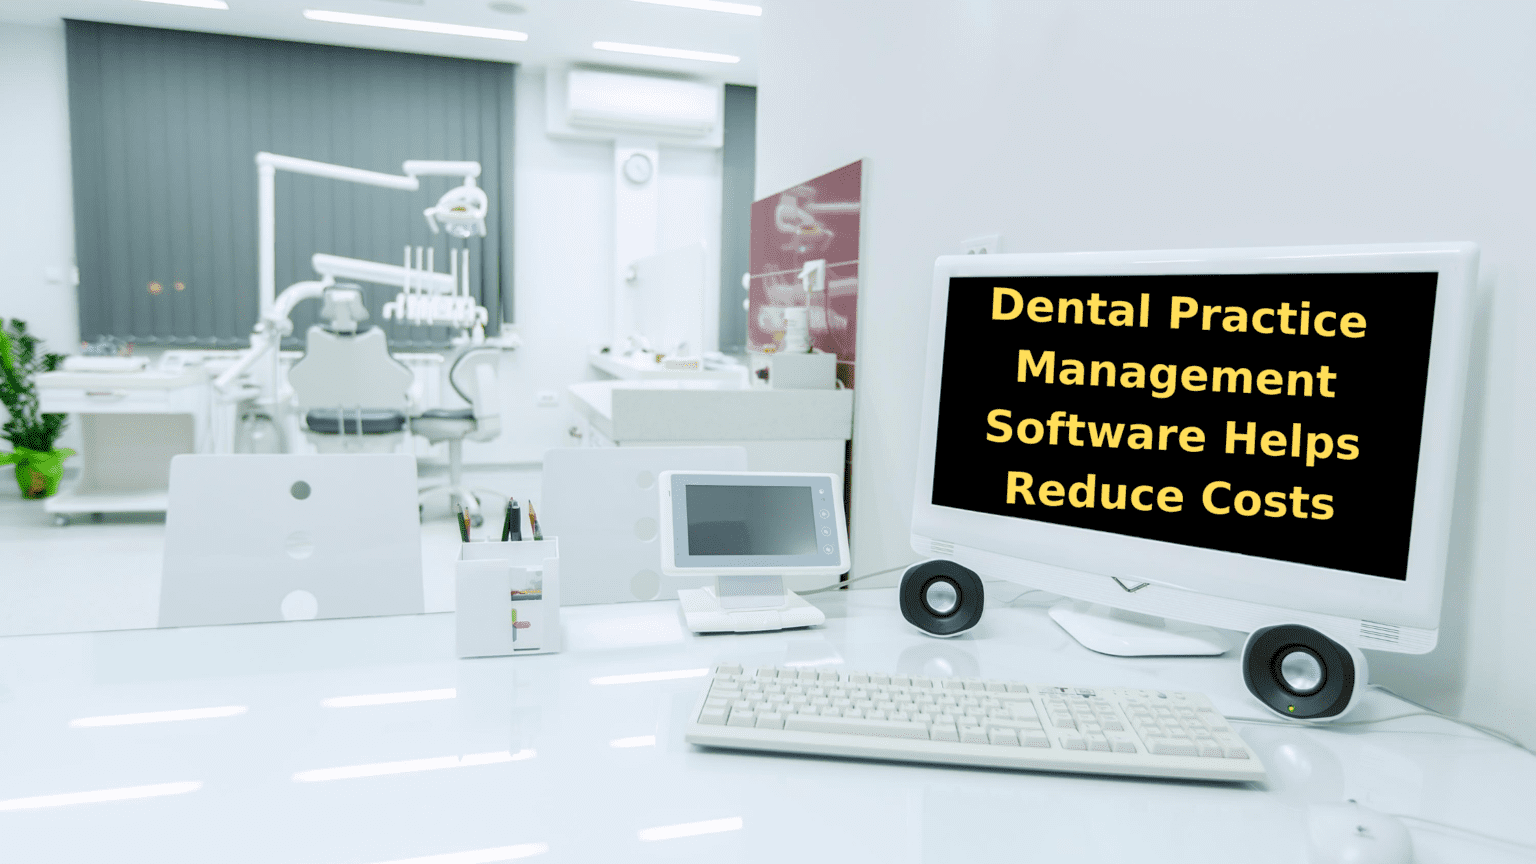 Dental Practice Management Software Helps Reduce Costs